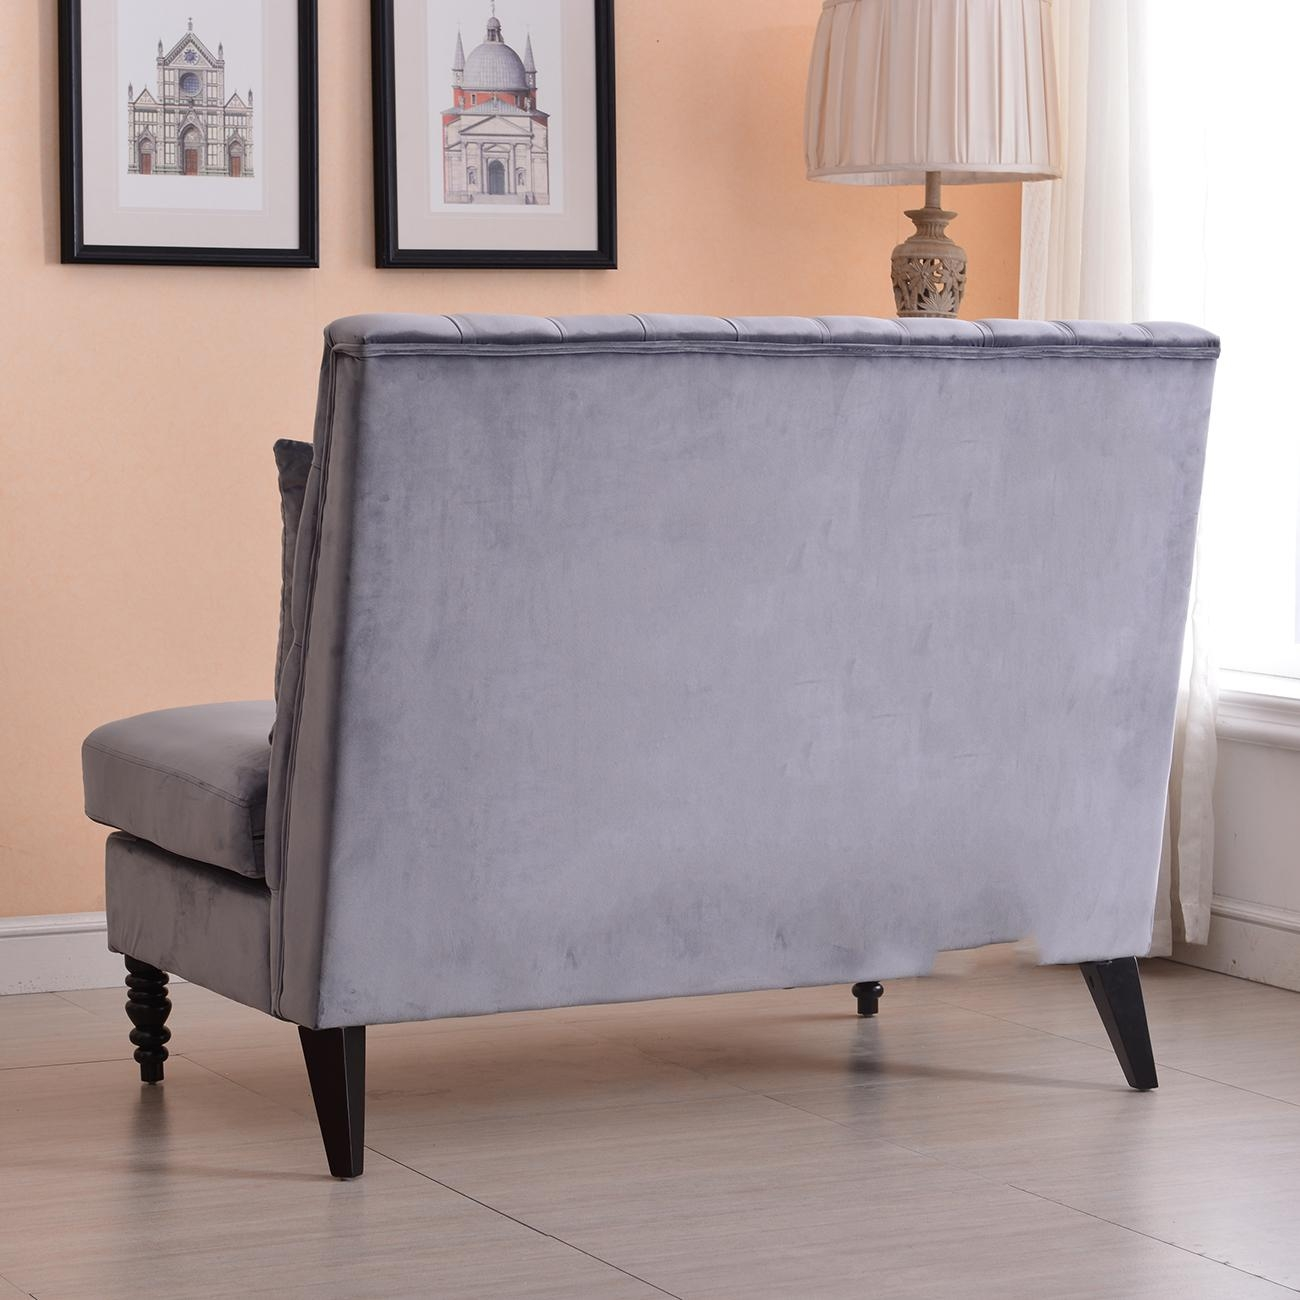 New Modern Tufted Settee Bedroom Bench Sofa High Back Cushion Seat Regarding Bedroom Bench Sofas (Image 17 of 20)